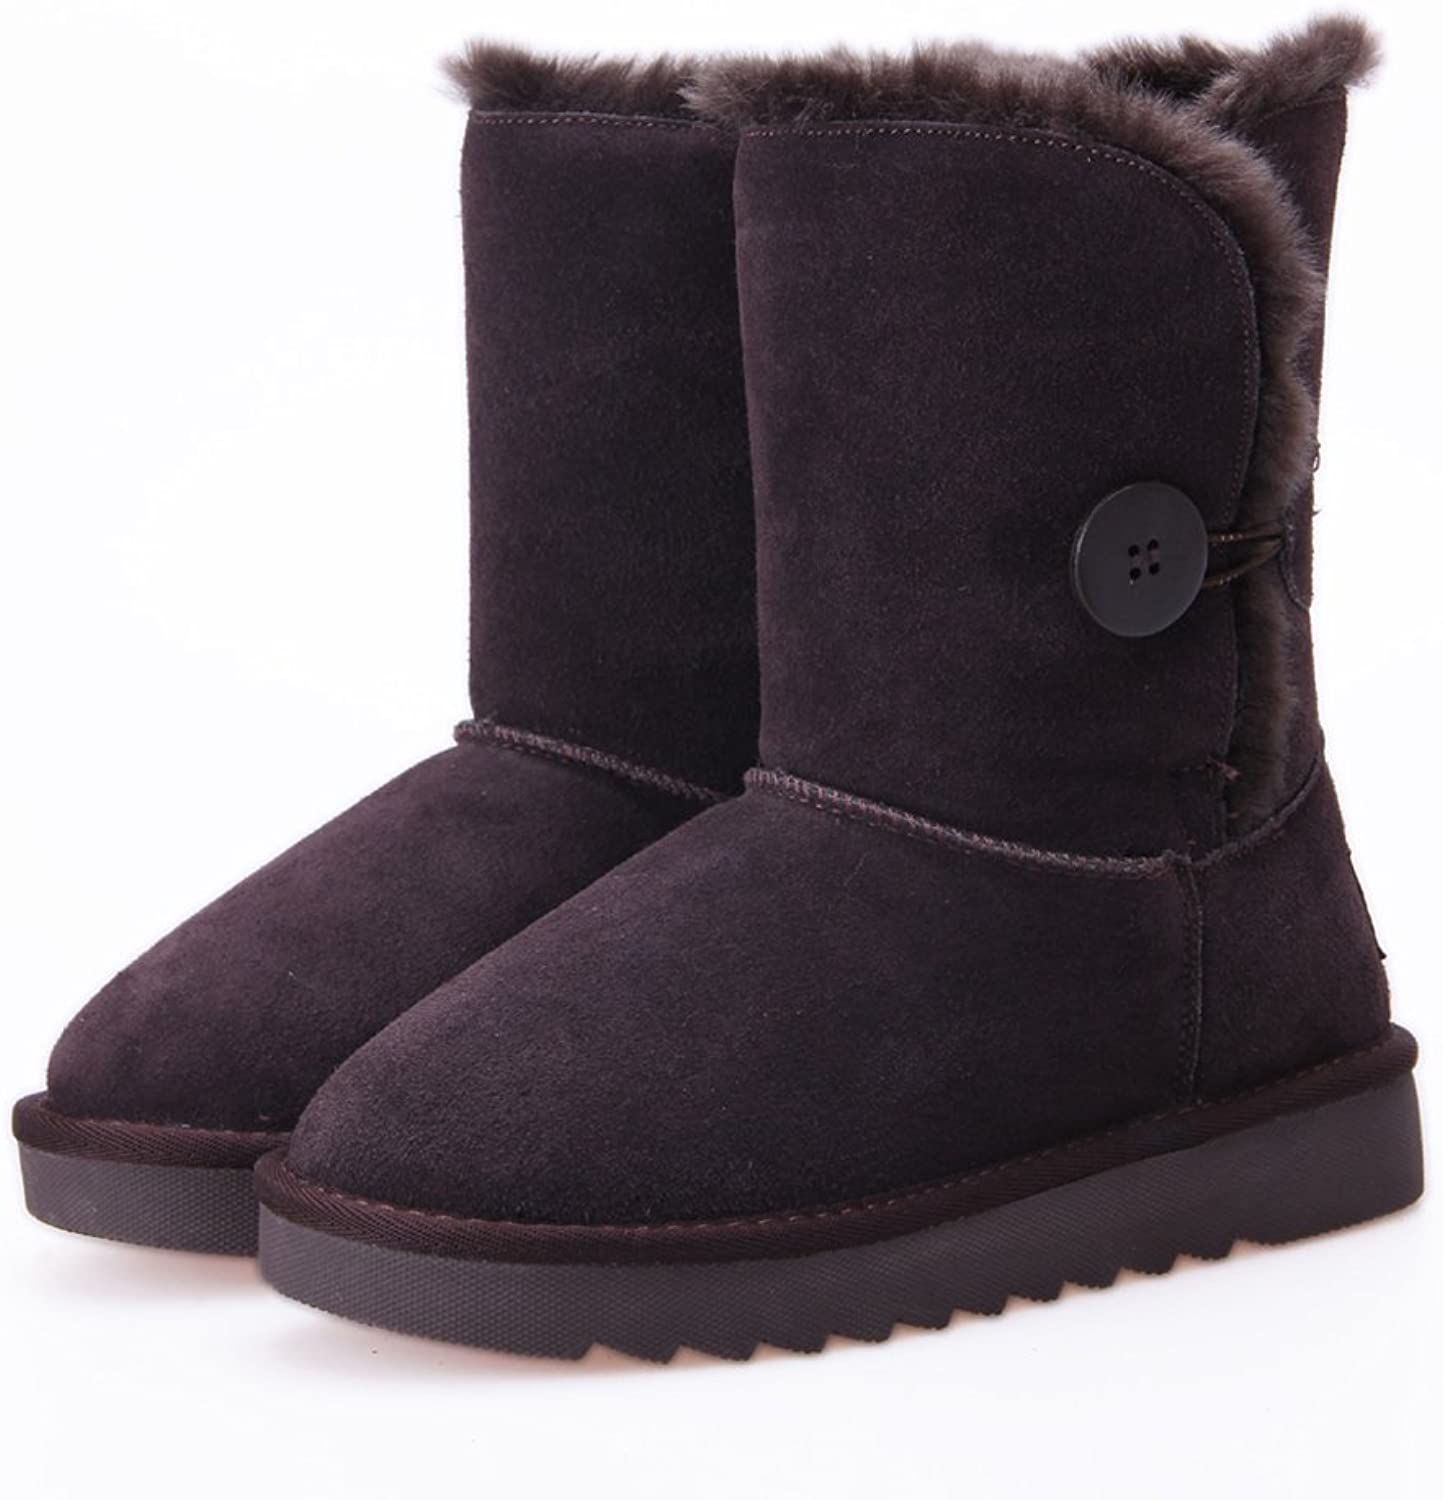 Freewent Women's Mid Calf Faux Shearling Fur Winter Snow Boots